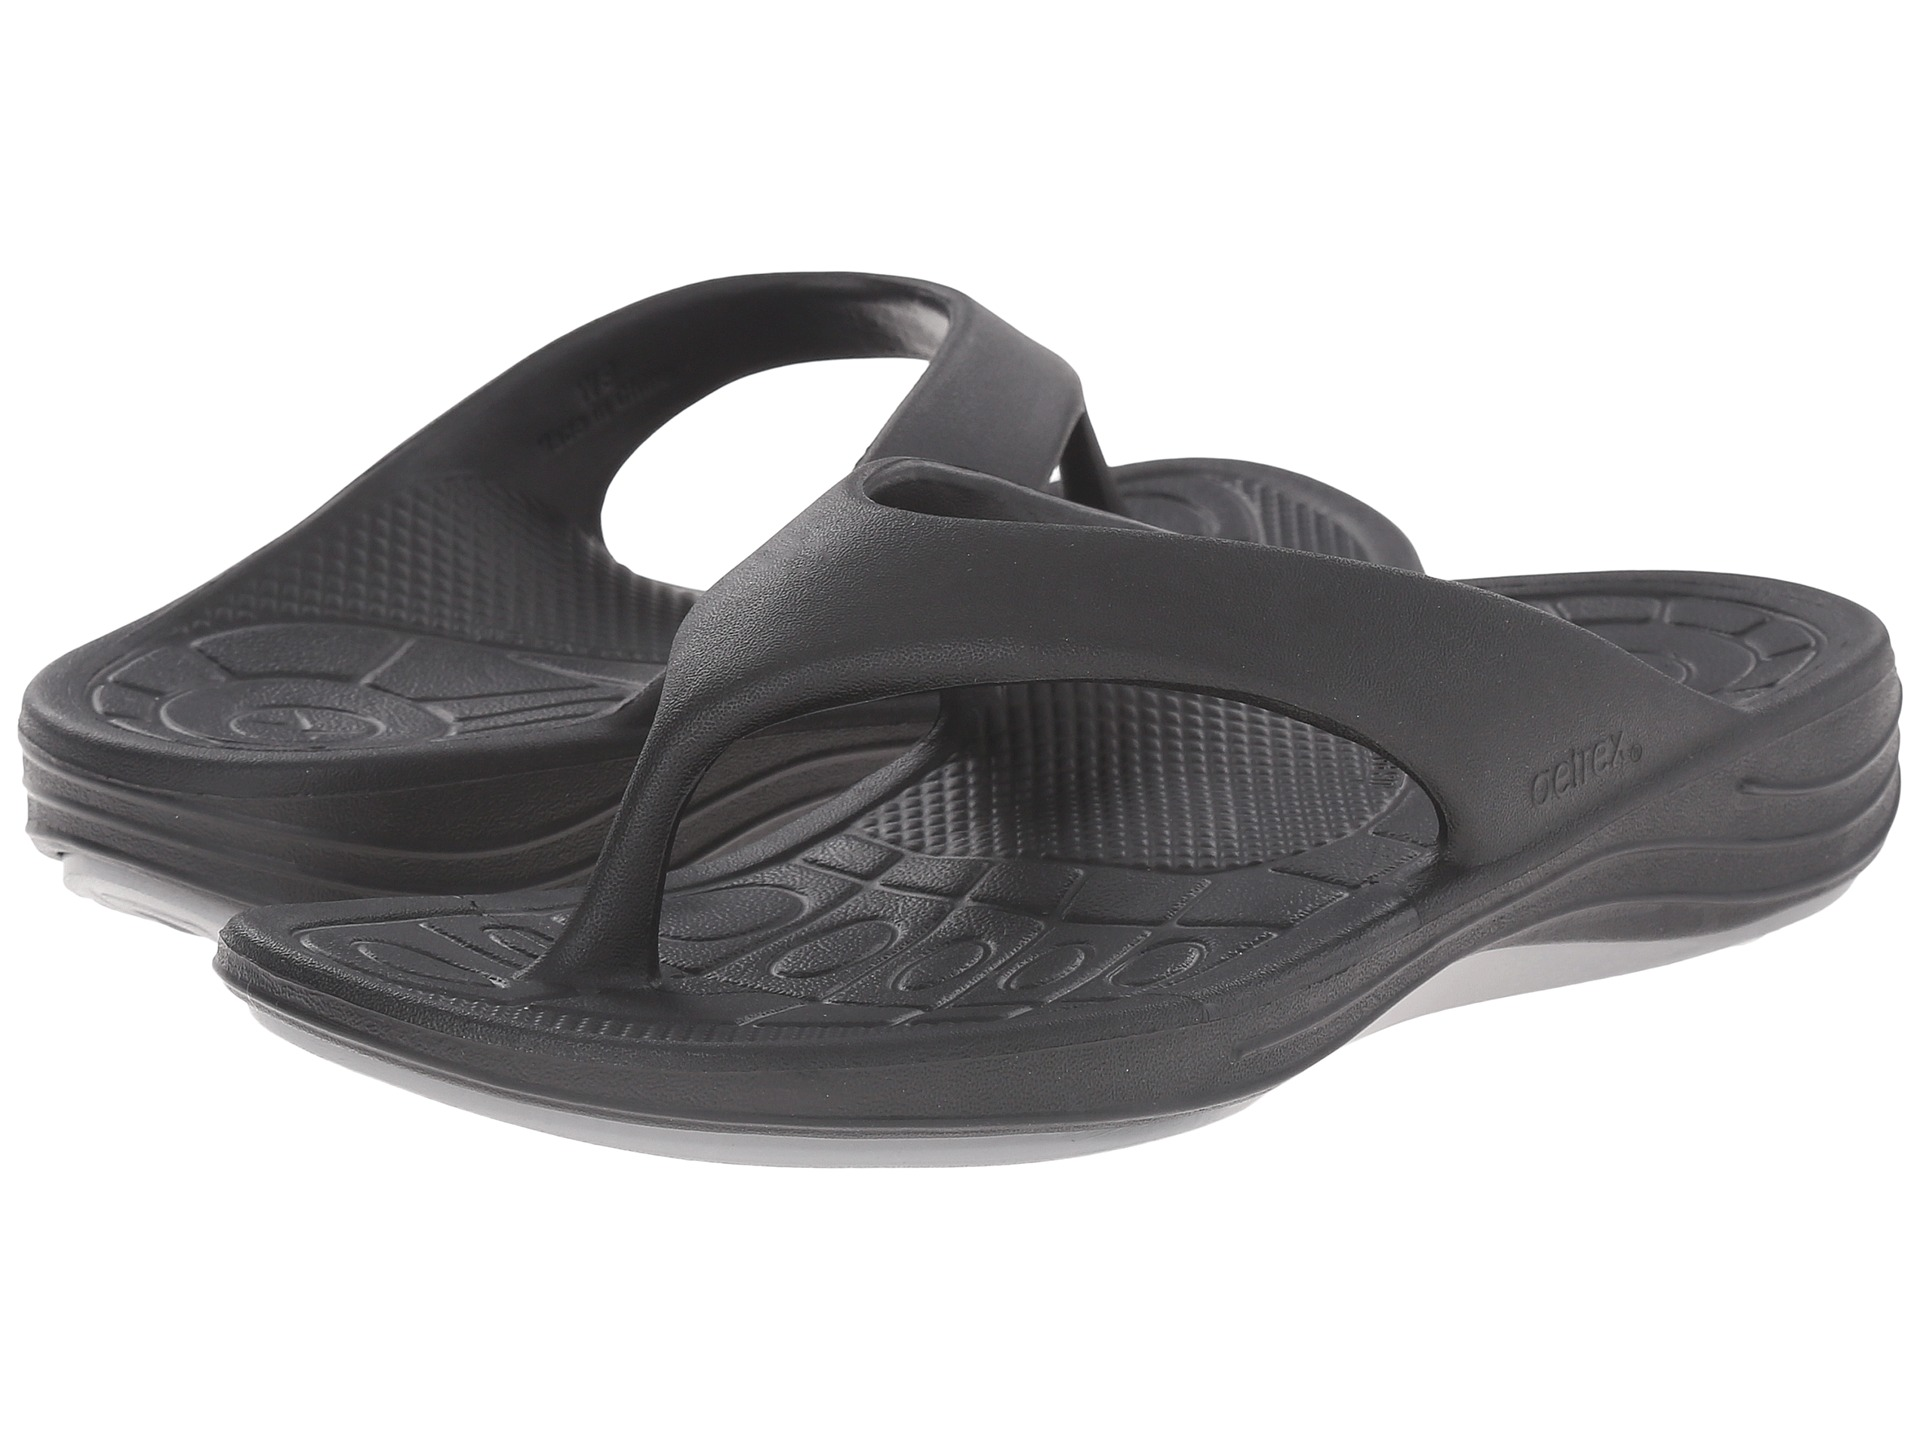 lynco women The lynco slide sandal is made from ultrasky™ injected eva to provide extreme cushioning, shock attenuation and durability you'll feel like you're walking on air with most comfortable footwear experience on earth.